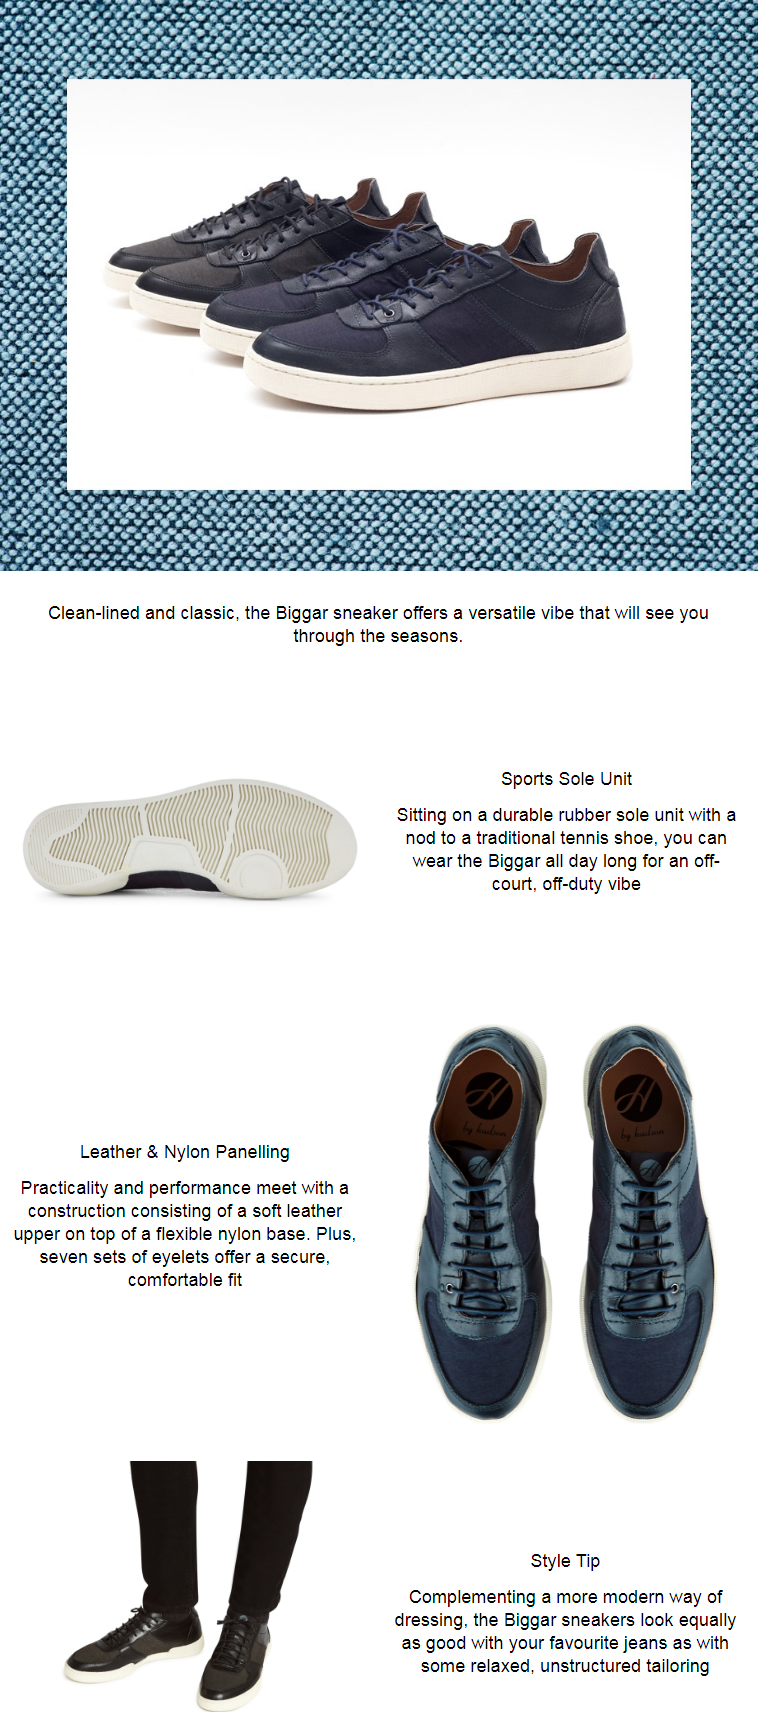 The Biggar sneaker pairs practicality and performance with modern-day design. A supple leather upper...